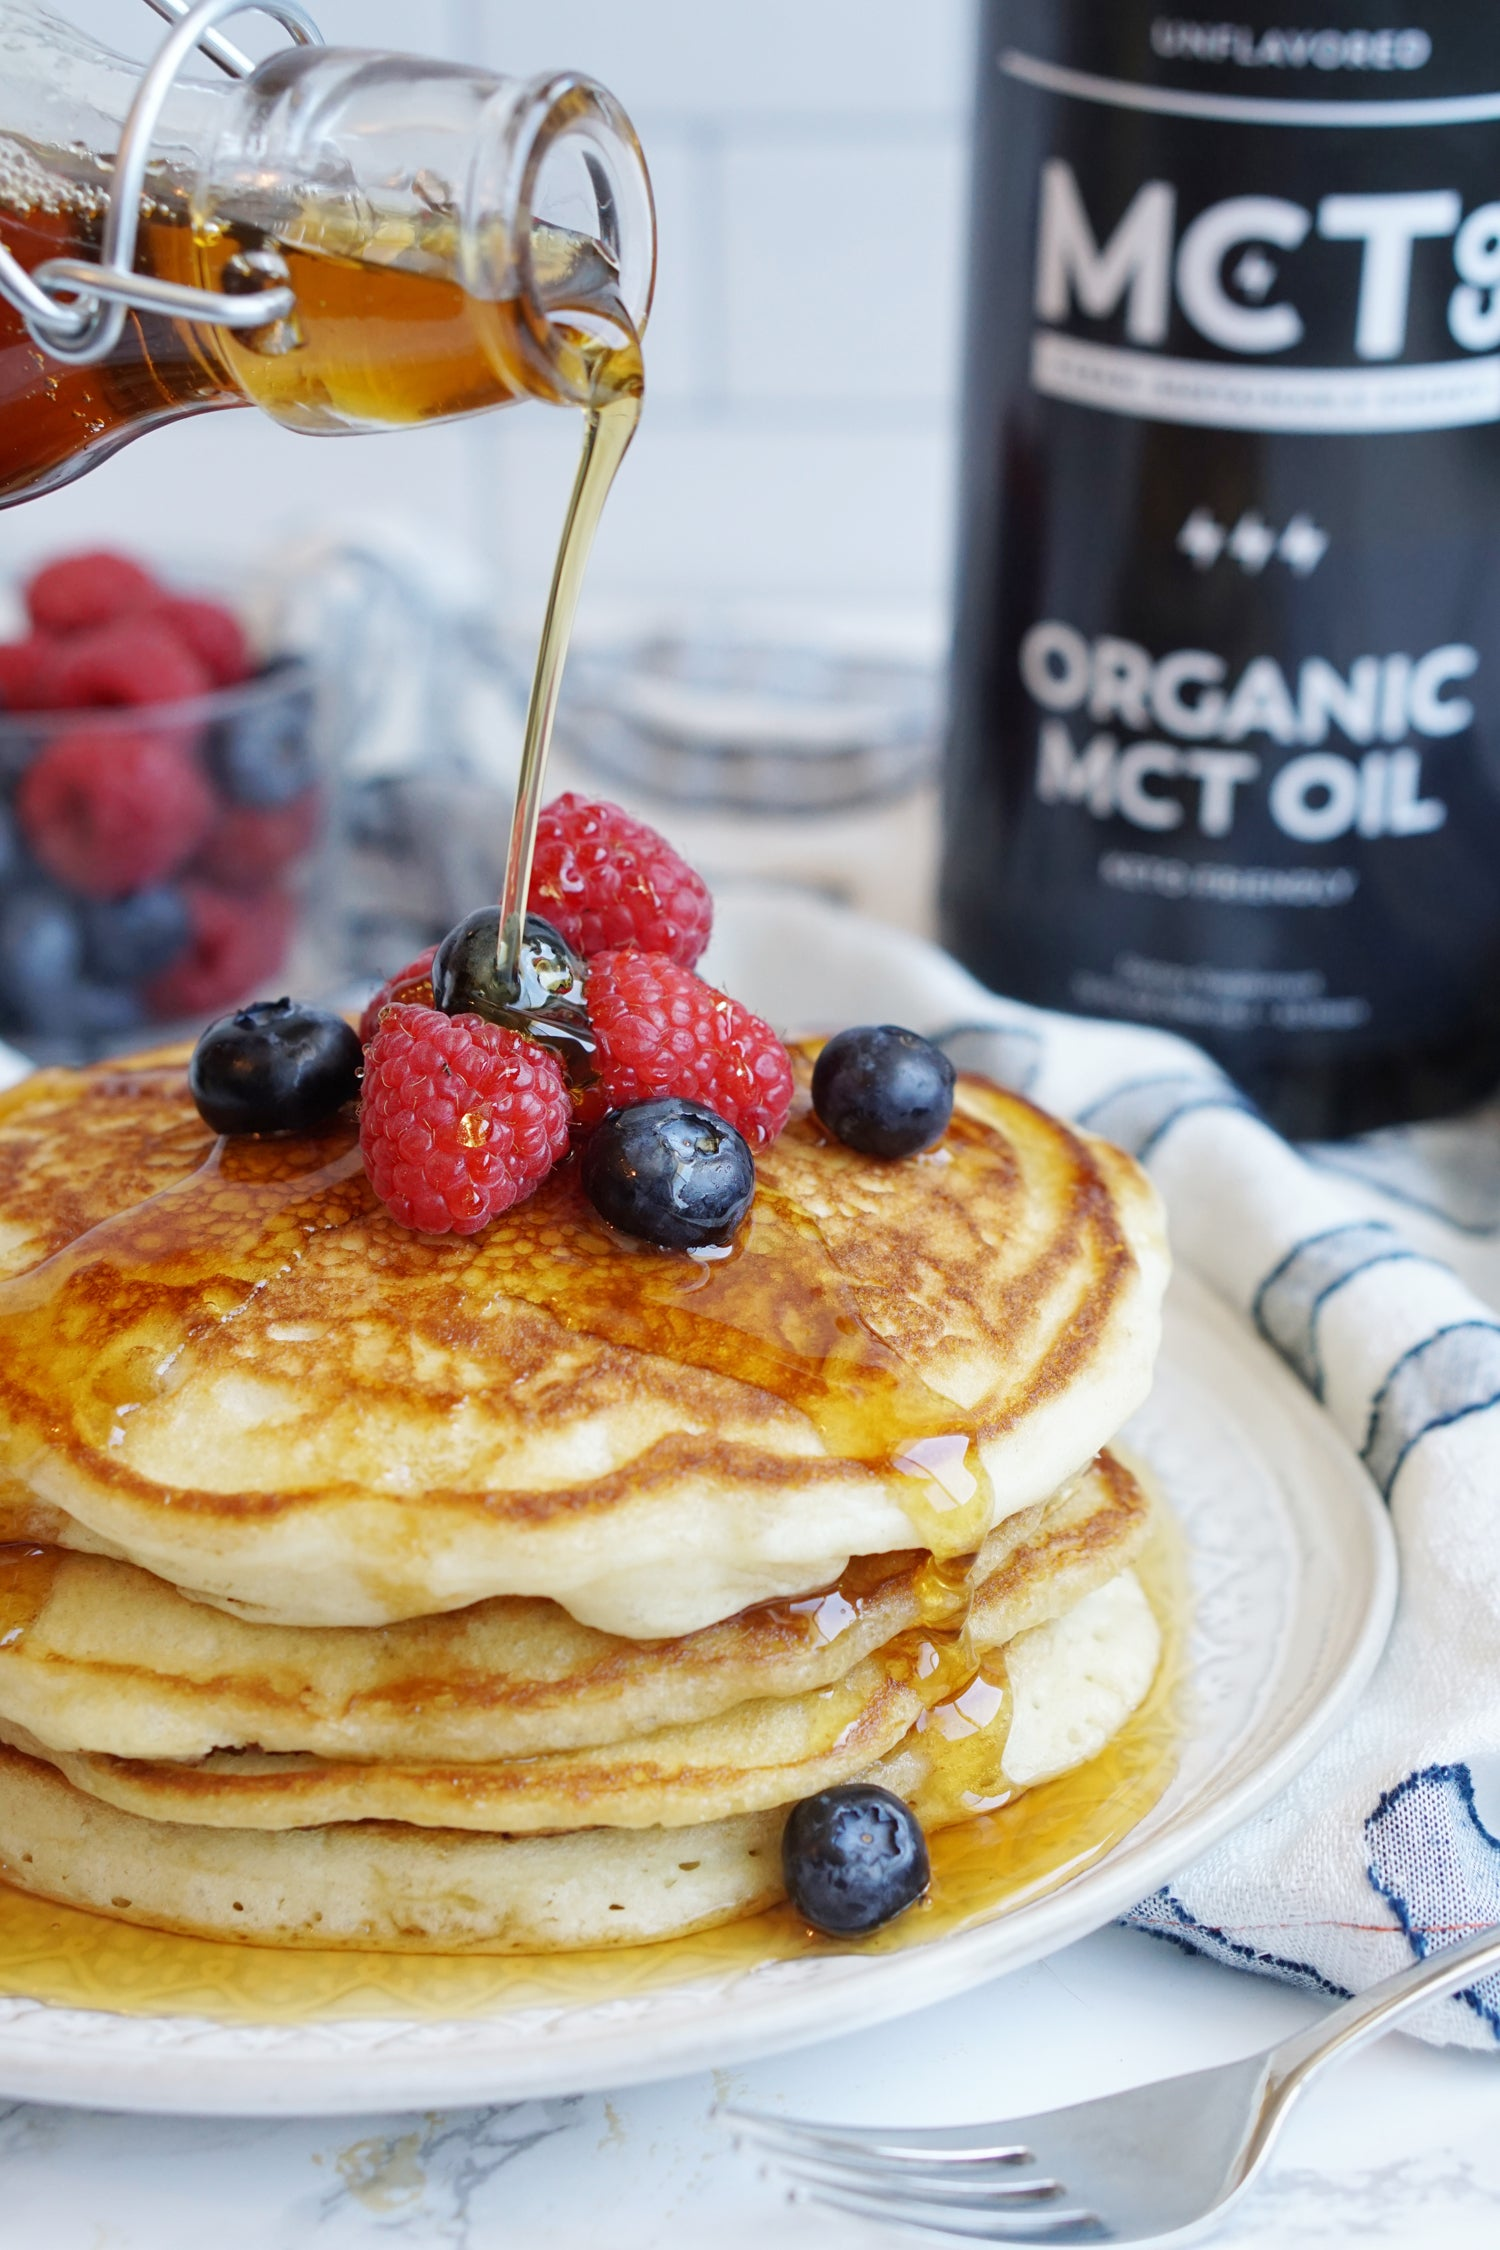 keto-friendly mctoil pancakes